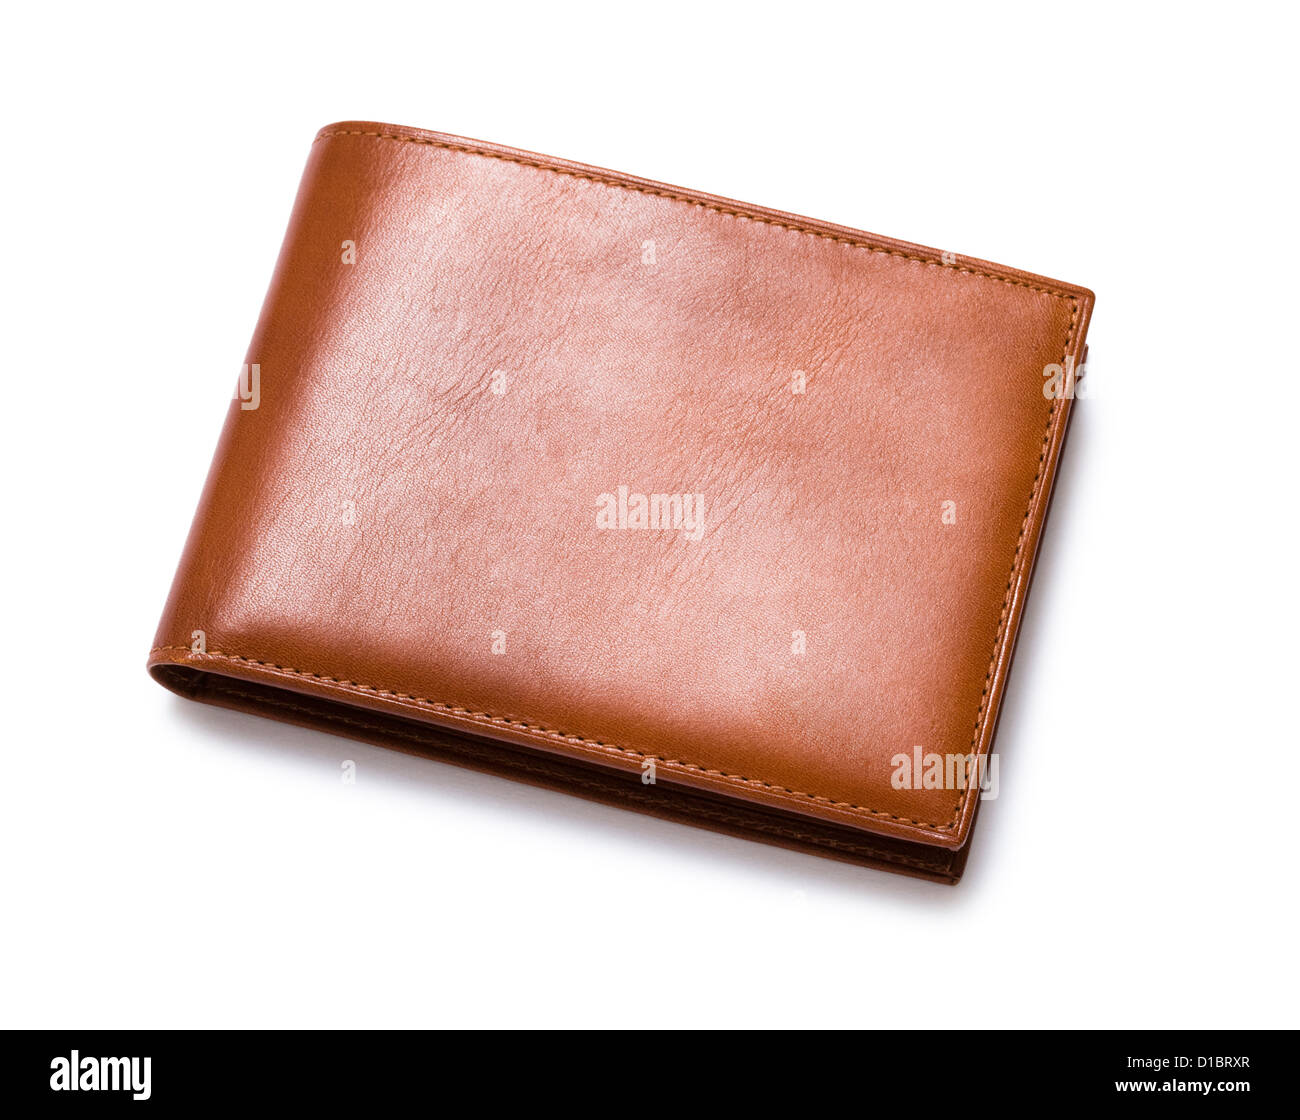 Leather wallet. - Stock Image